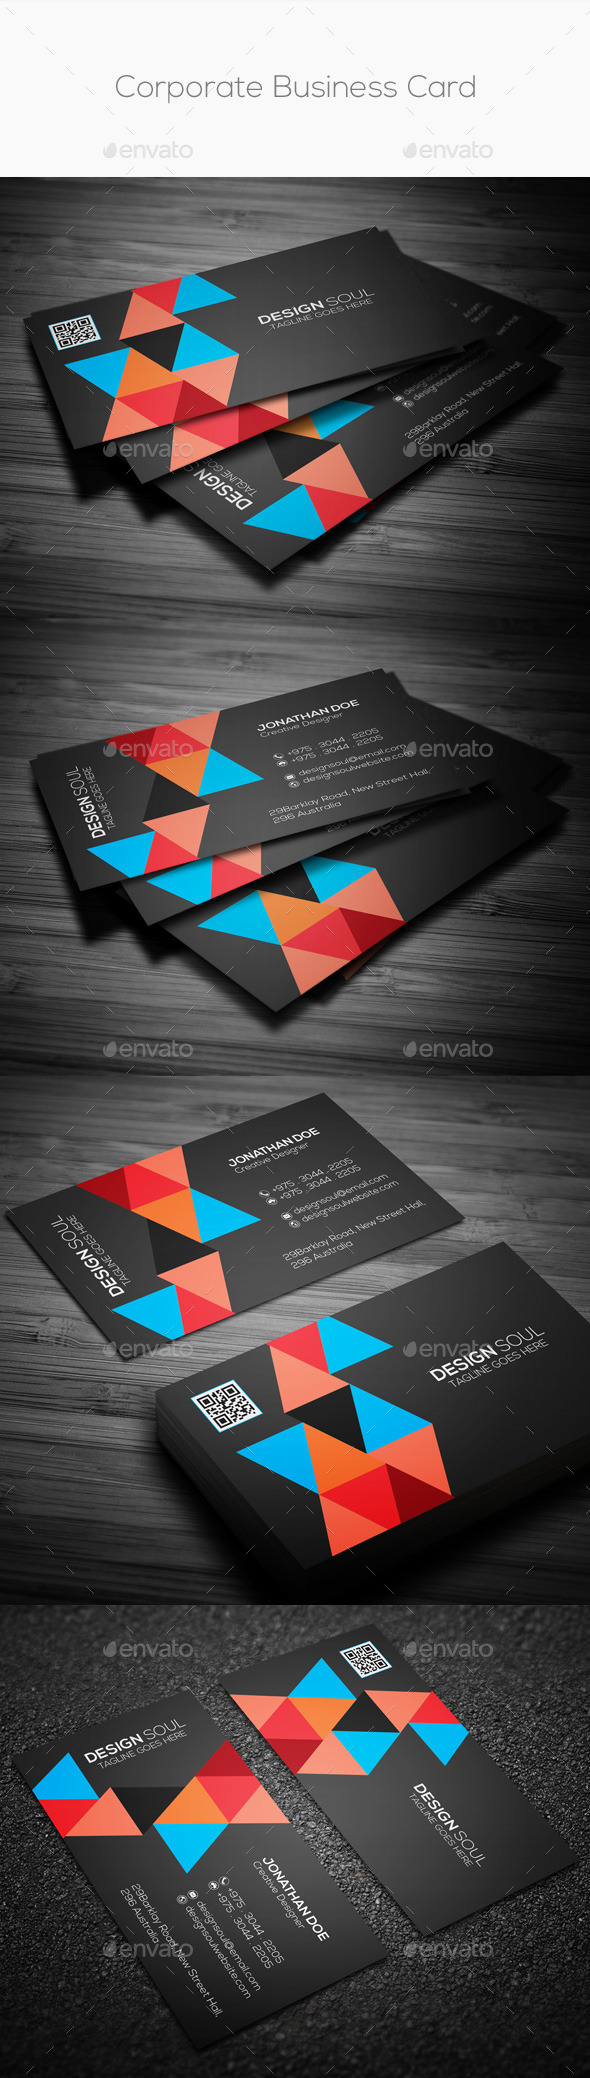 GraphicRiver Corporate Business Card 9909822